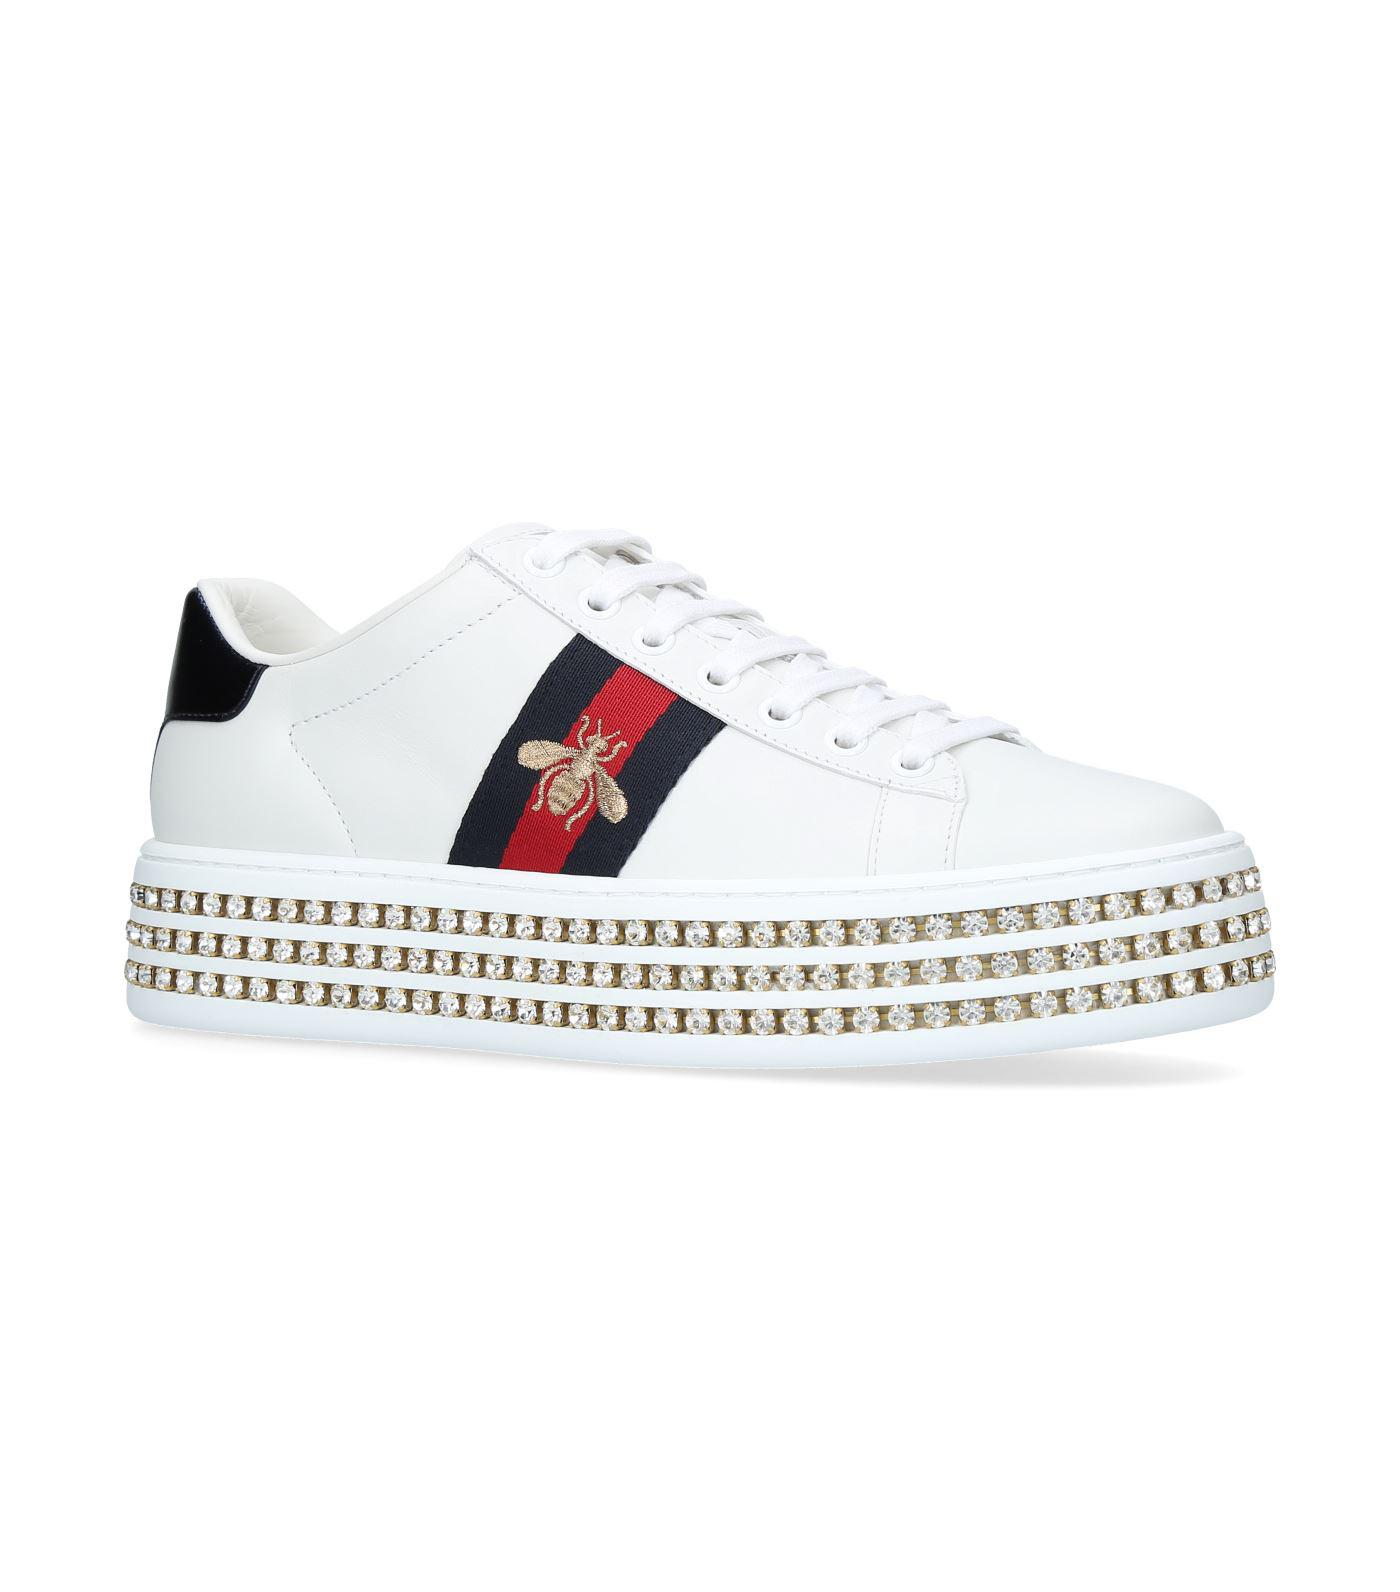 915c73fb59b8 Lyst - Gucci Ace Platform Sneakers in White - Save 20%